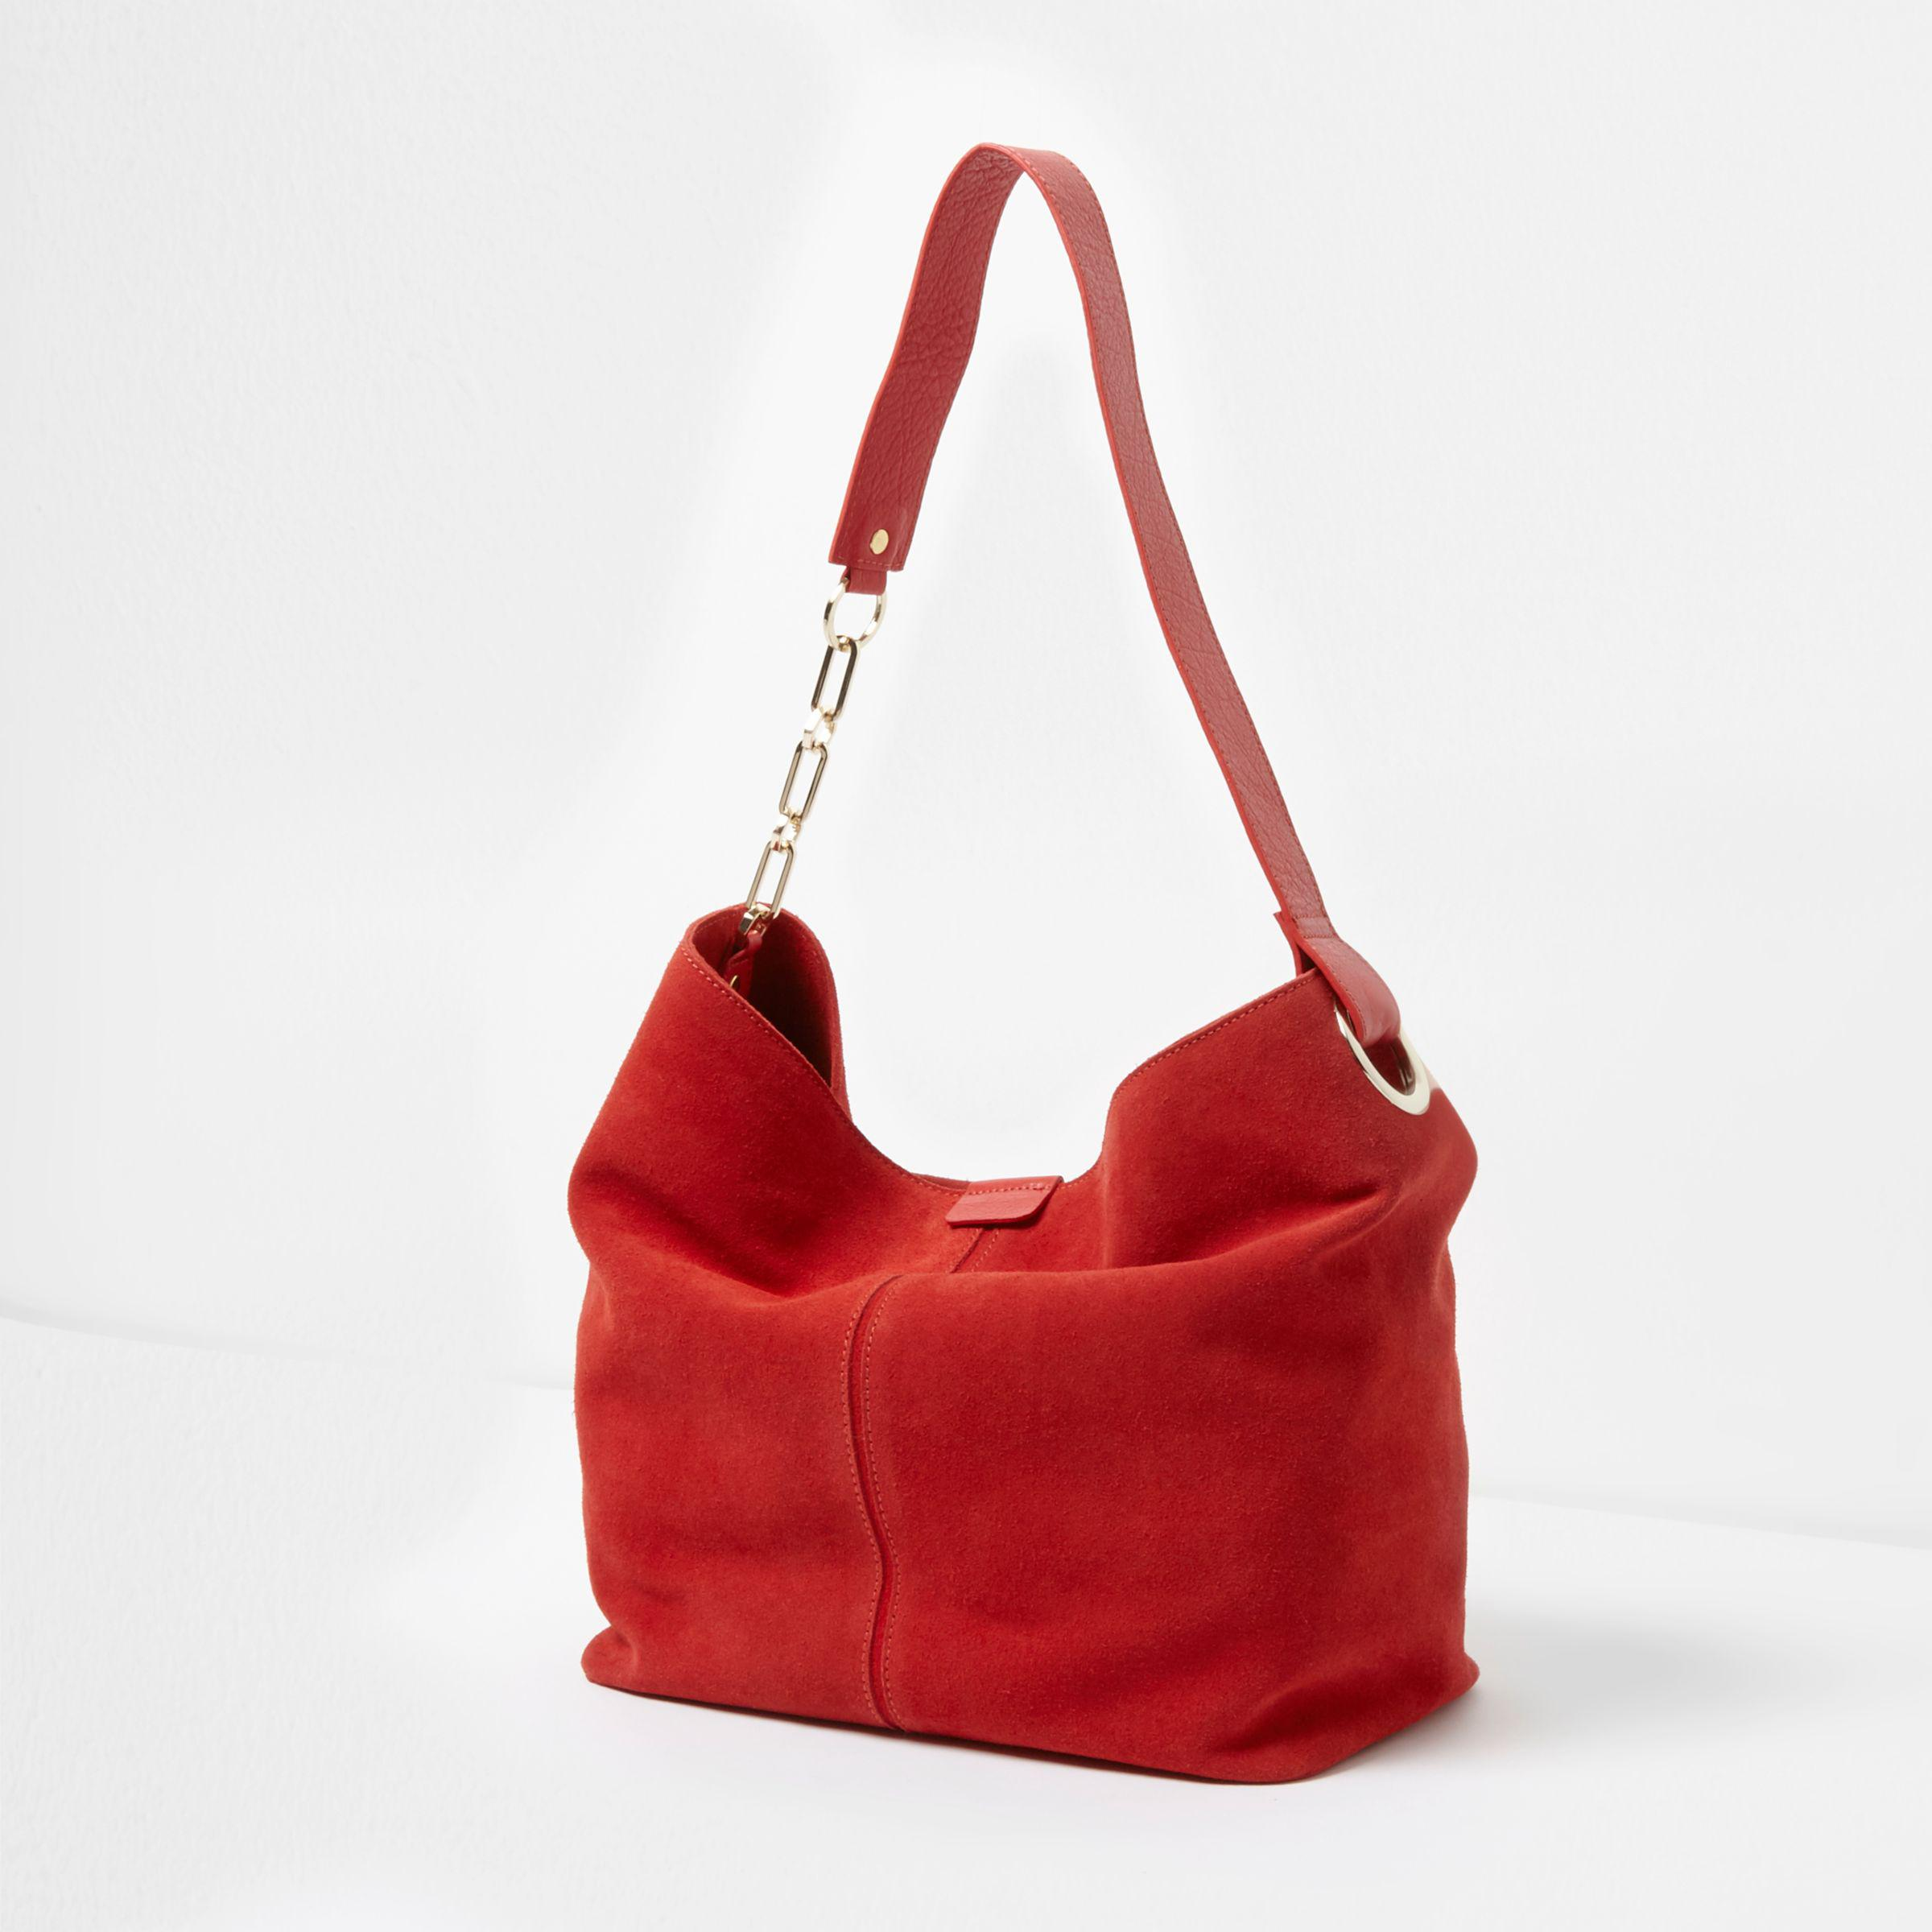 c4a29f9df1cf Lyst - River Island Red Suede Chain Link Handle Slouch Bag in Red